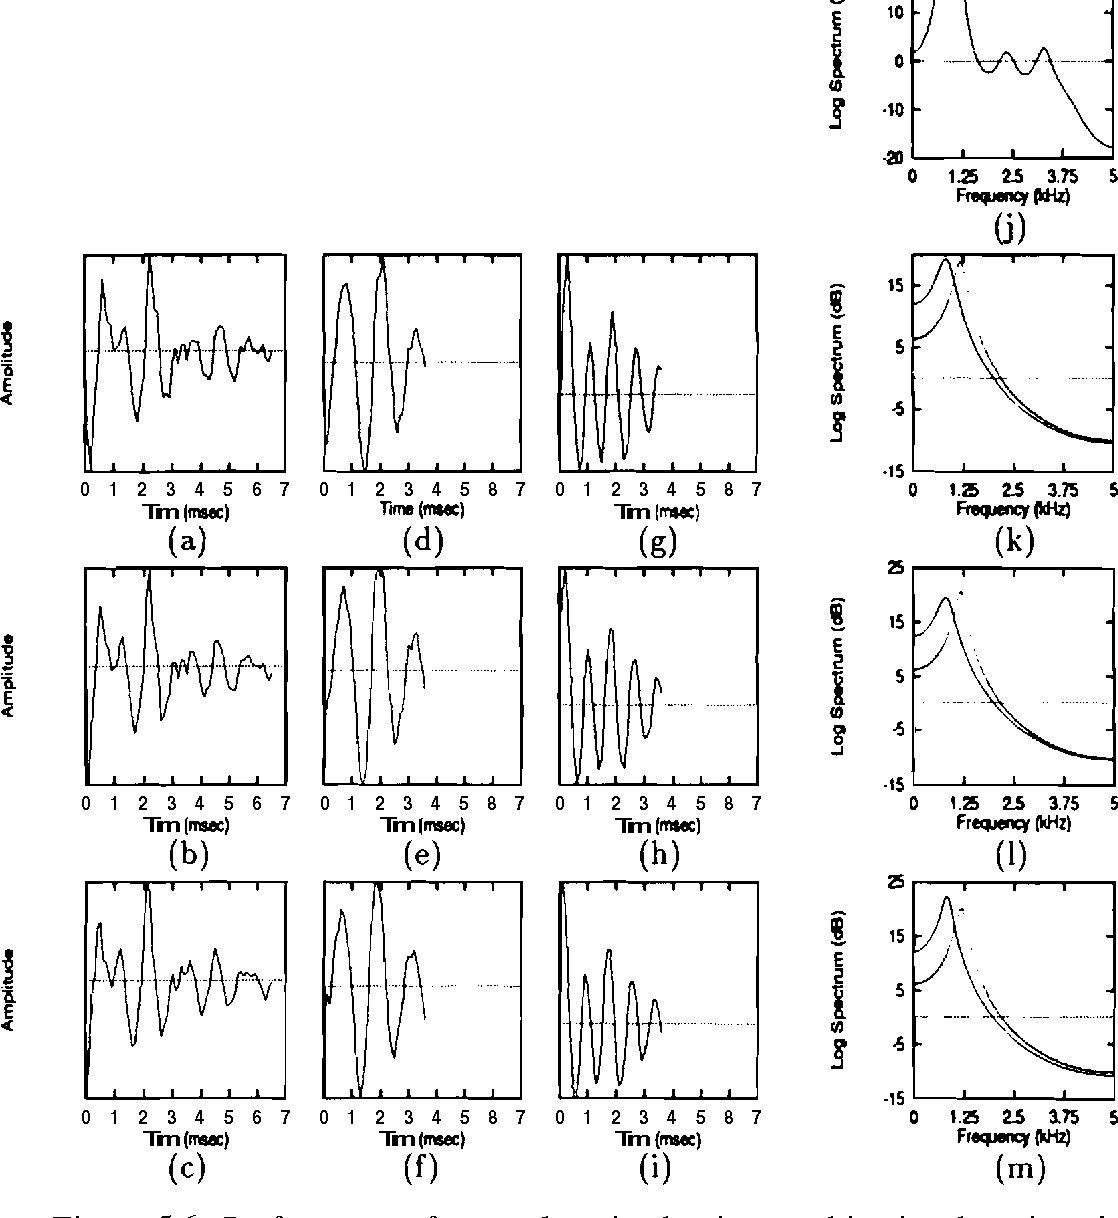 Figure 5.6: Performance of network trained using combination learning al- : gorithm in extracting the subsignals corresponding to the formants of the